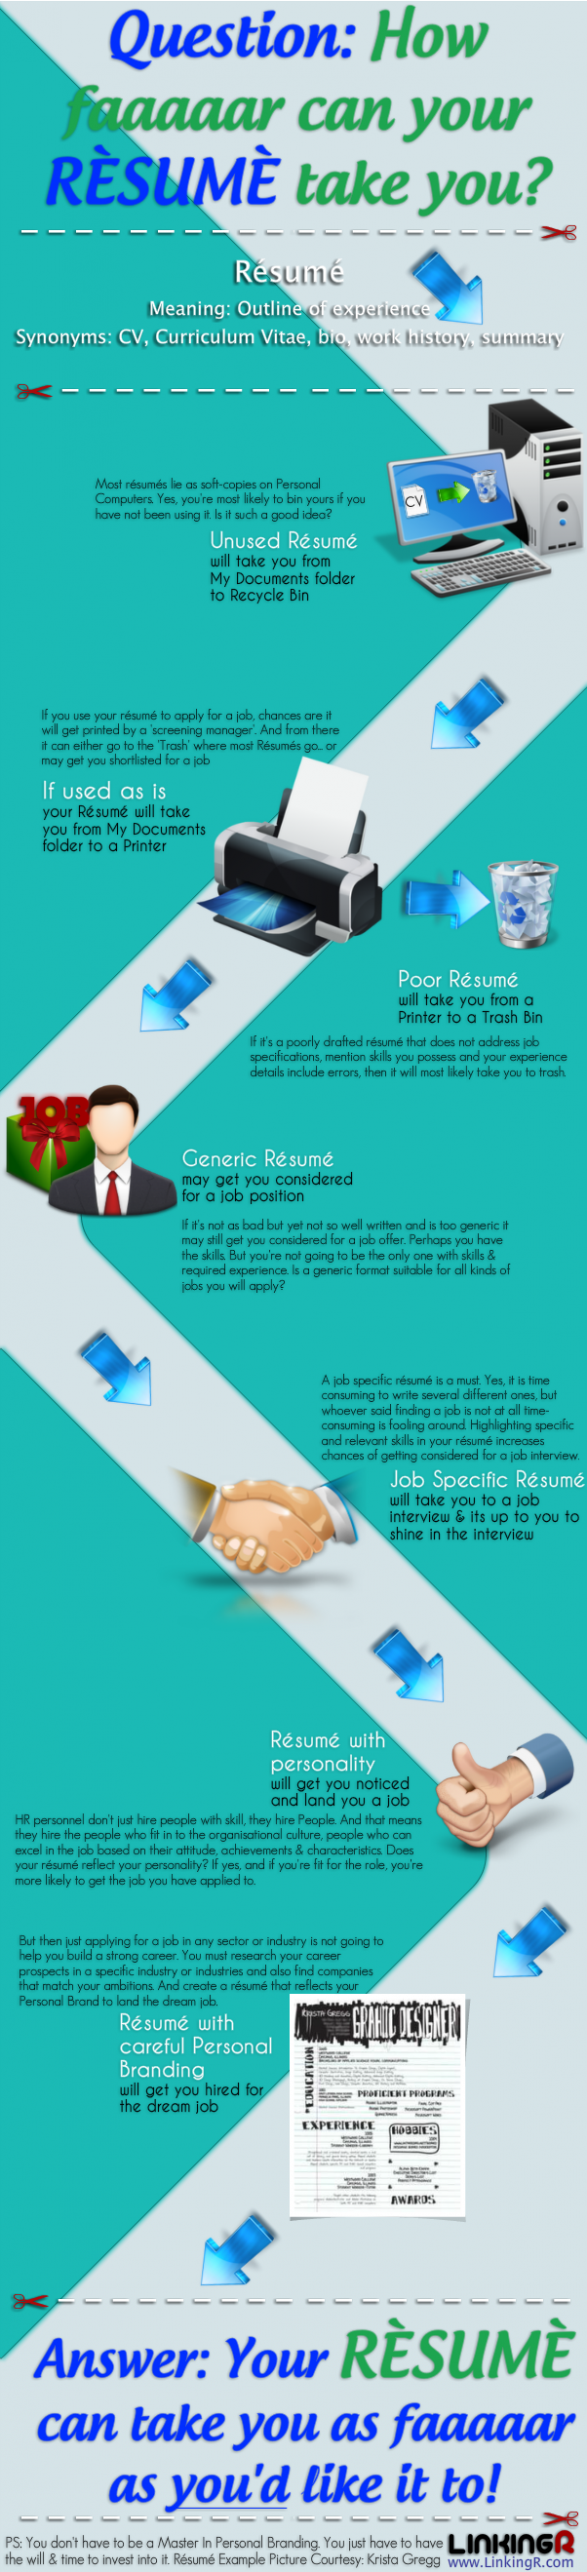 How Far Can Your Résumé Take You? [INFOGRAPHIC]